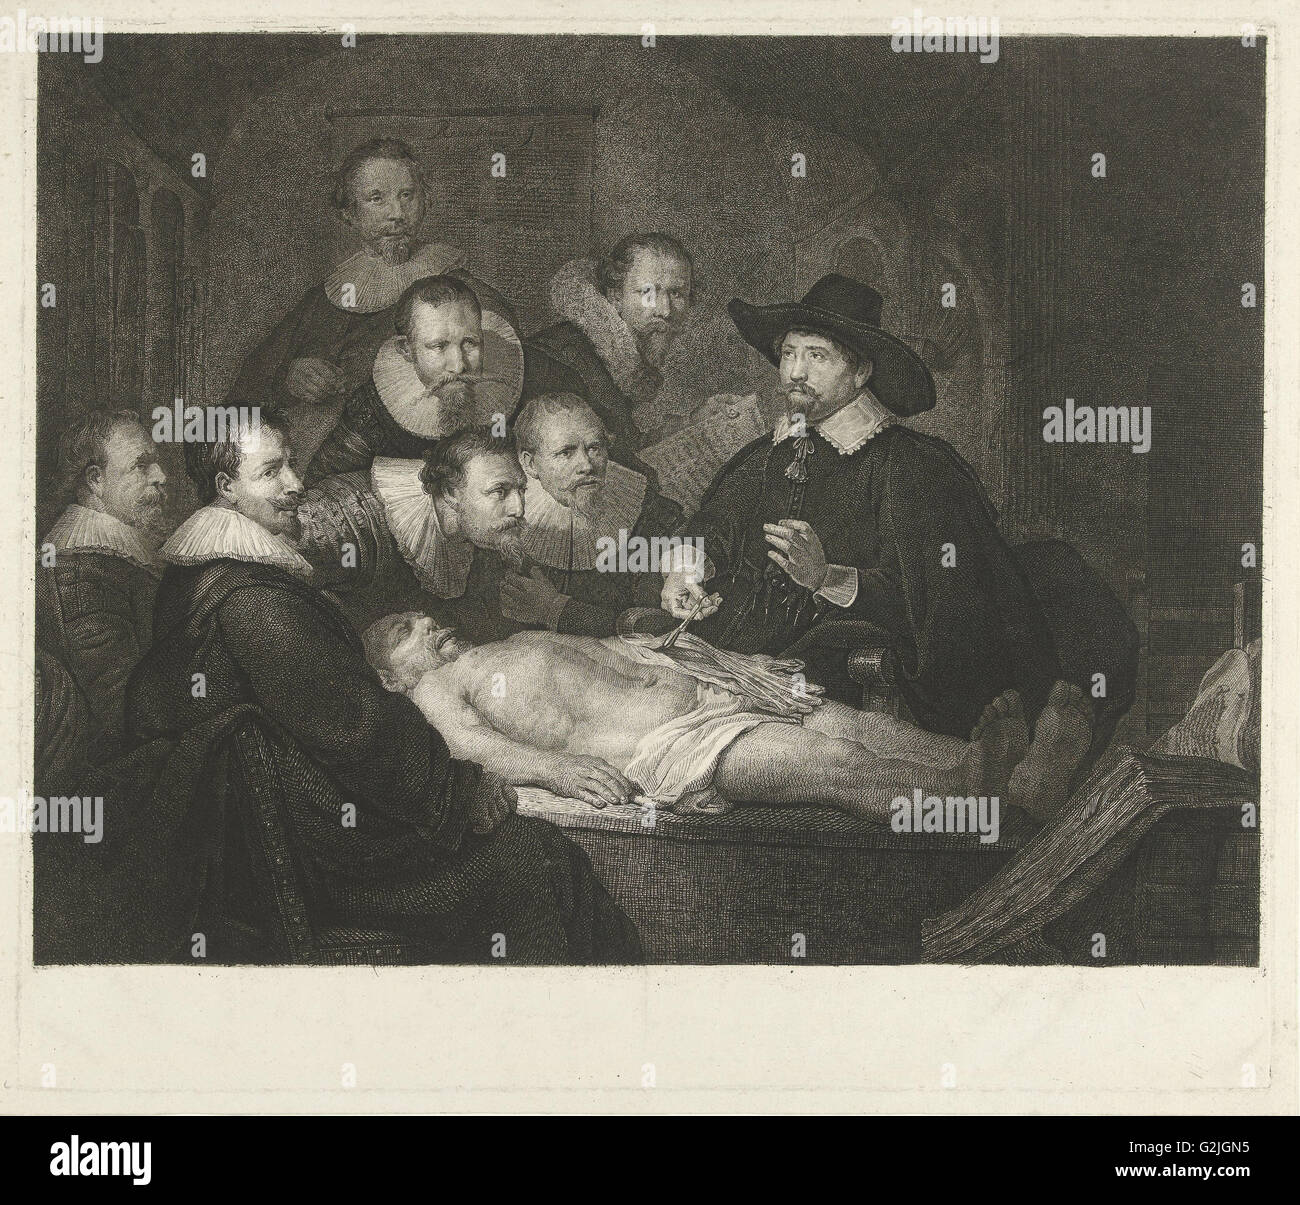 The Anatomy Lesson of Dr Nicolaes Tulp, Johannes Pieter de Frey ...